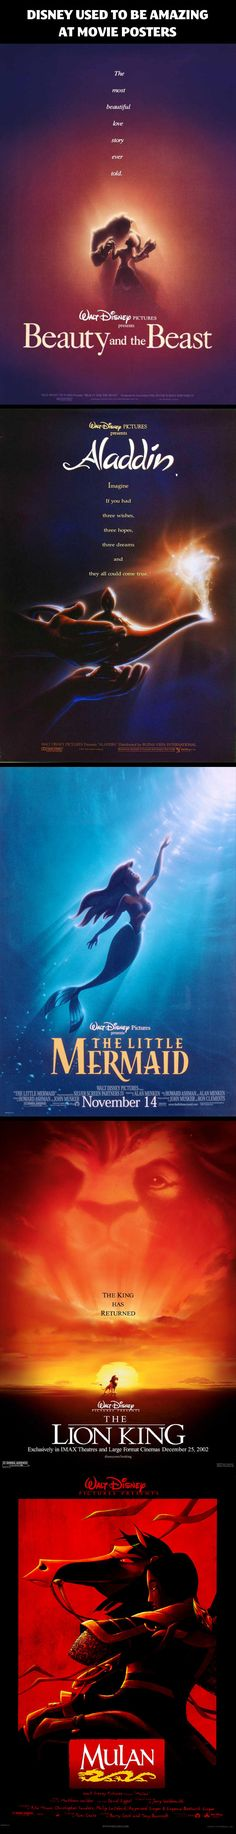 Disney are still pretty good at creating posters